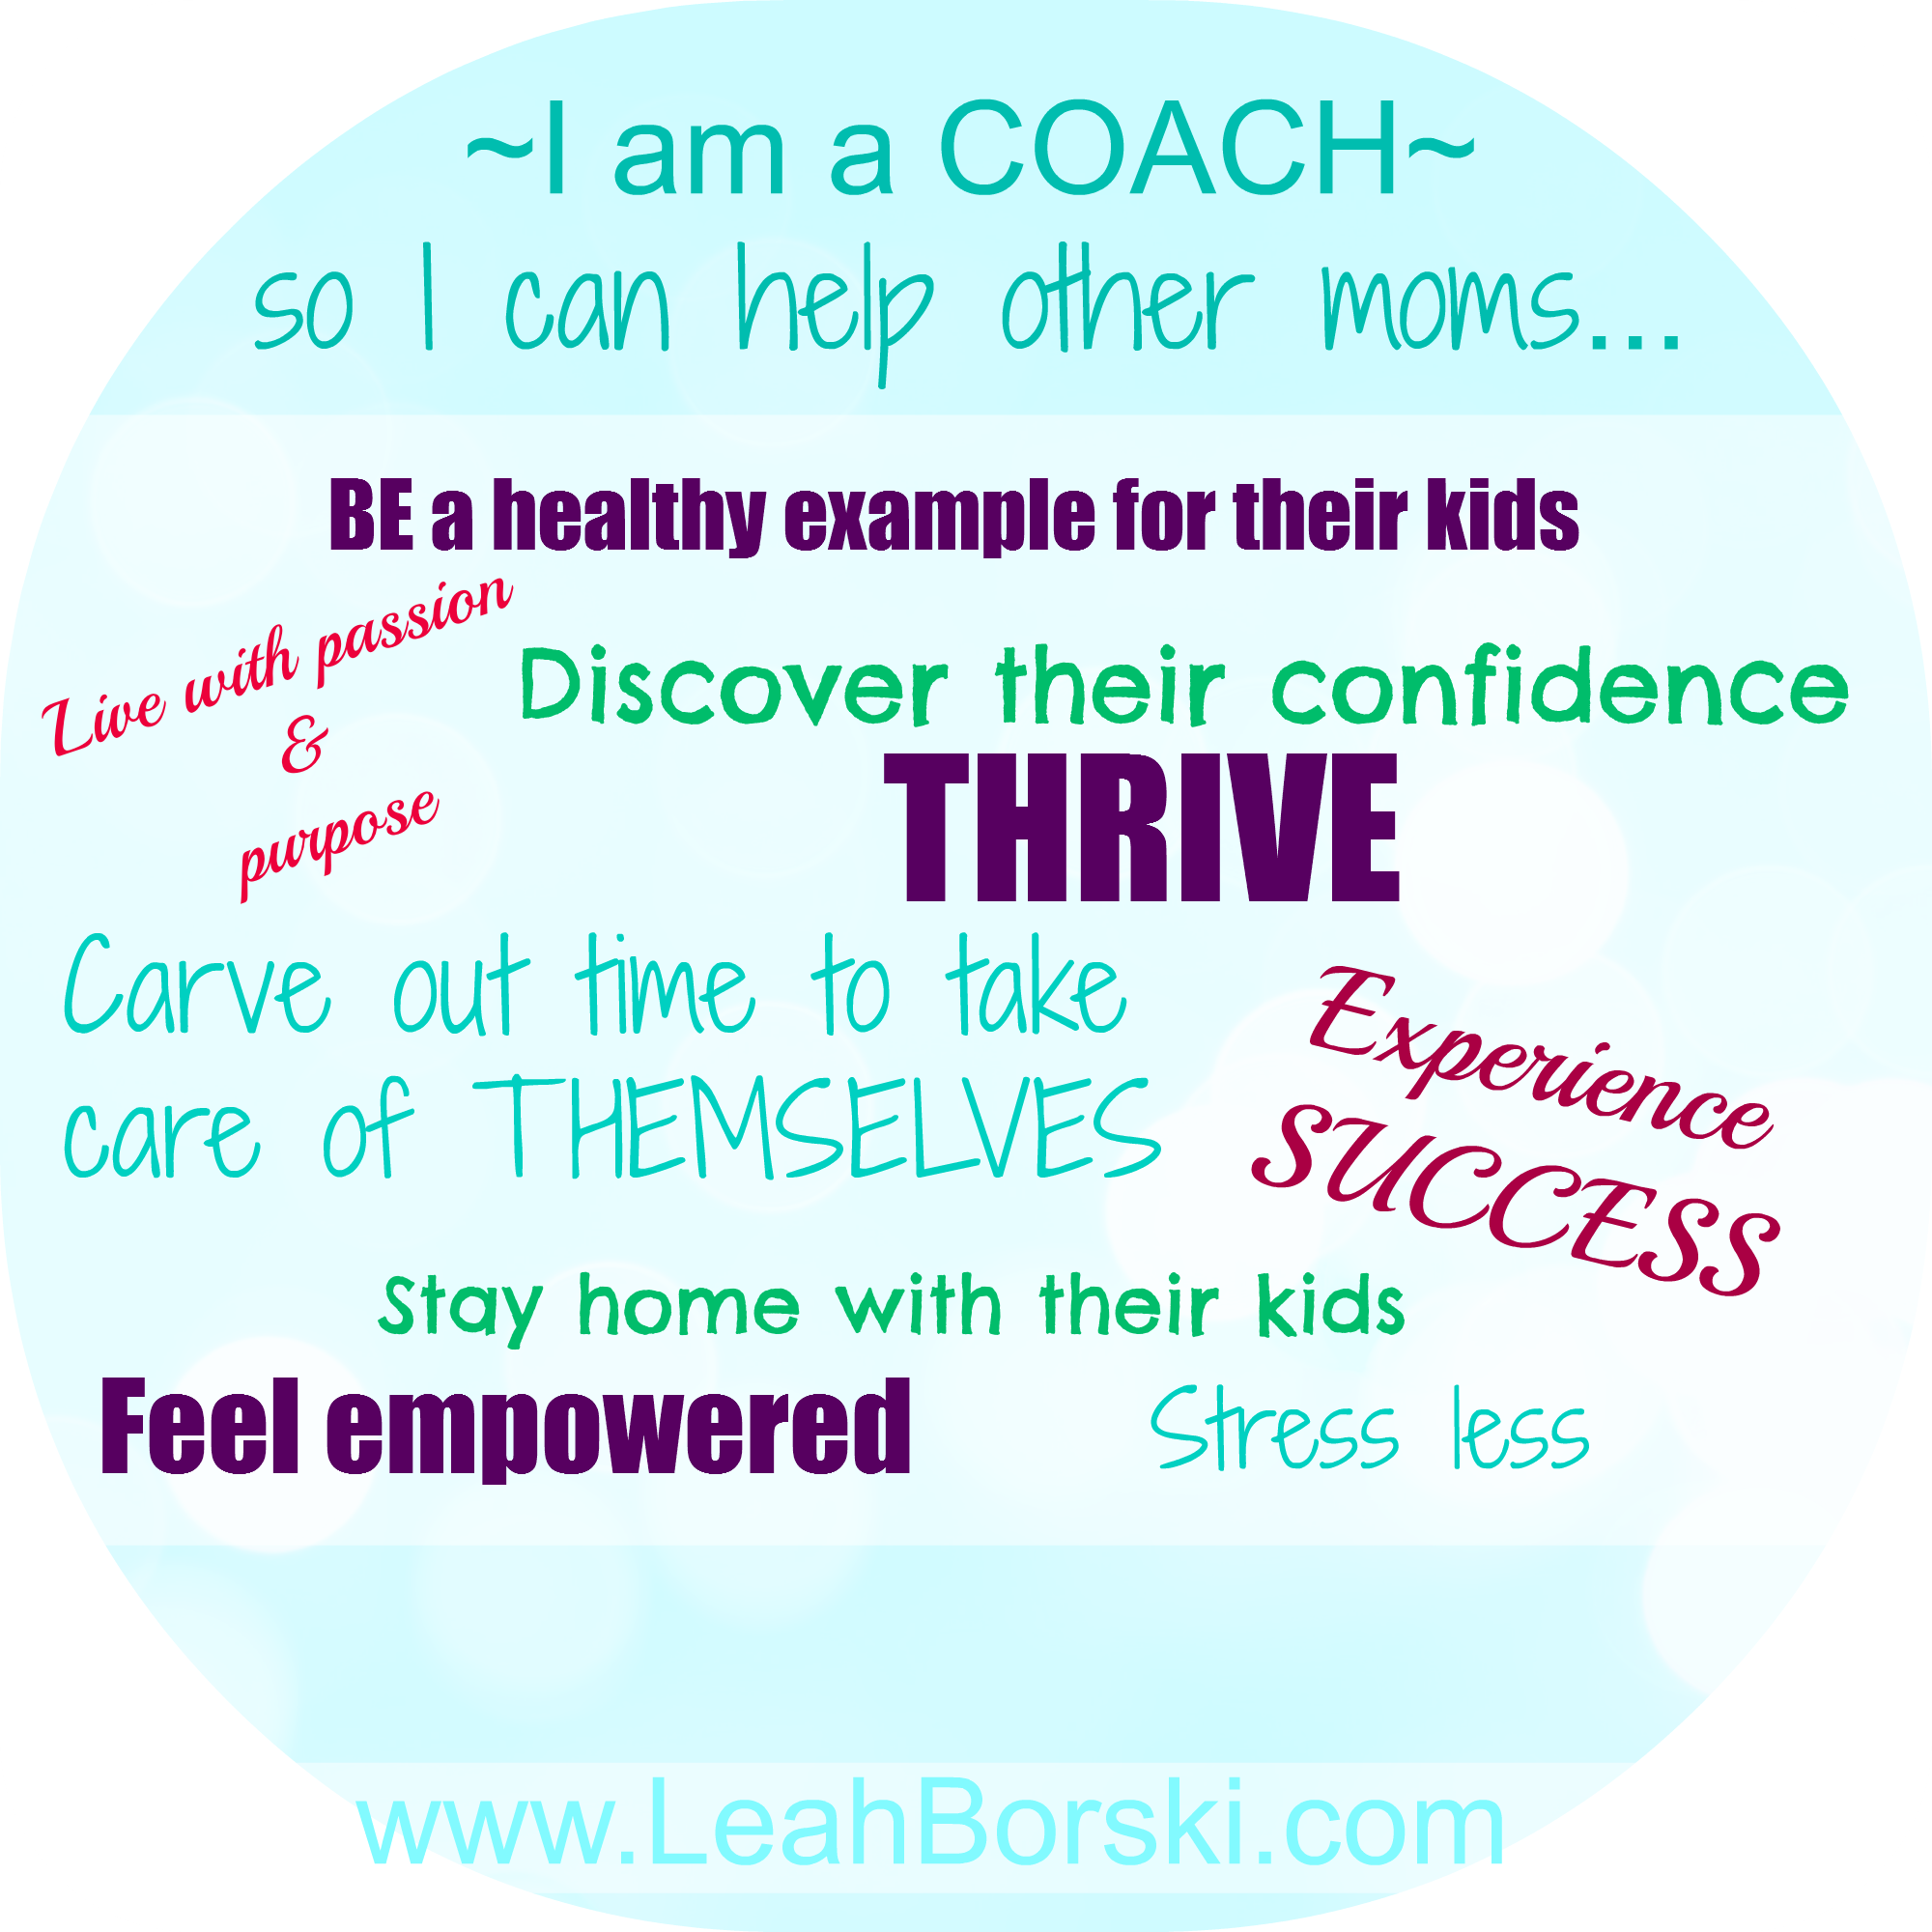 I am a coach so I can help other moms